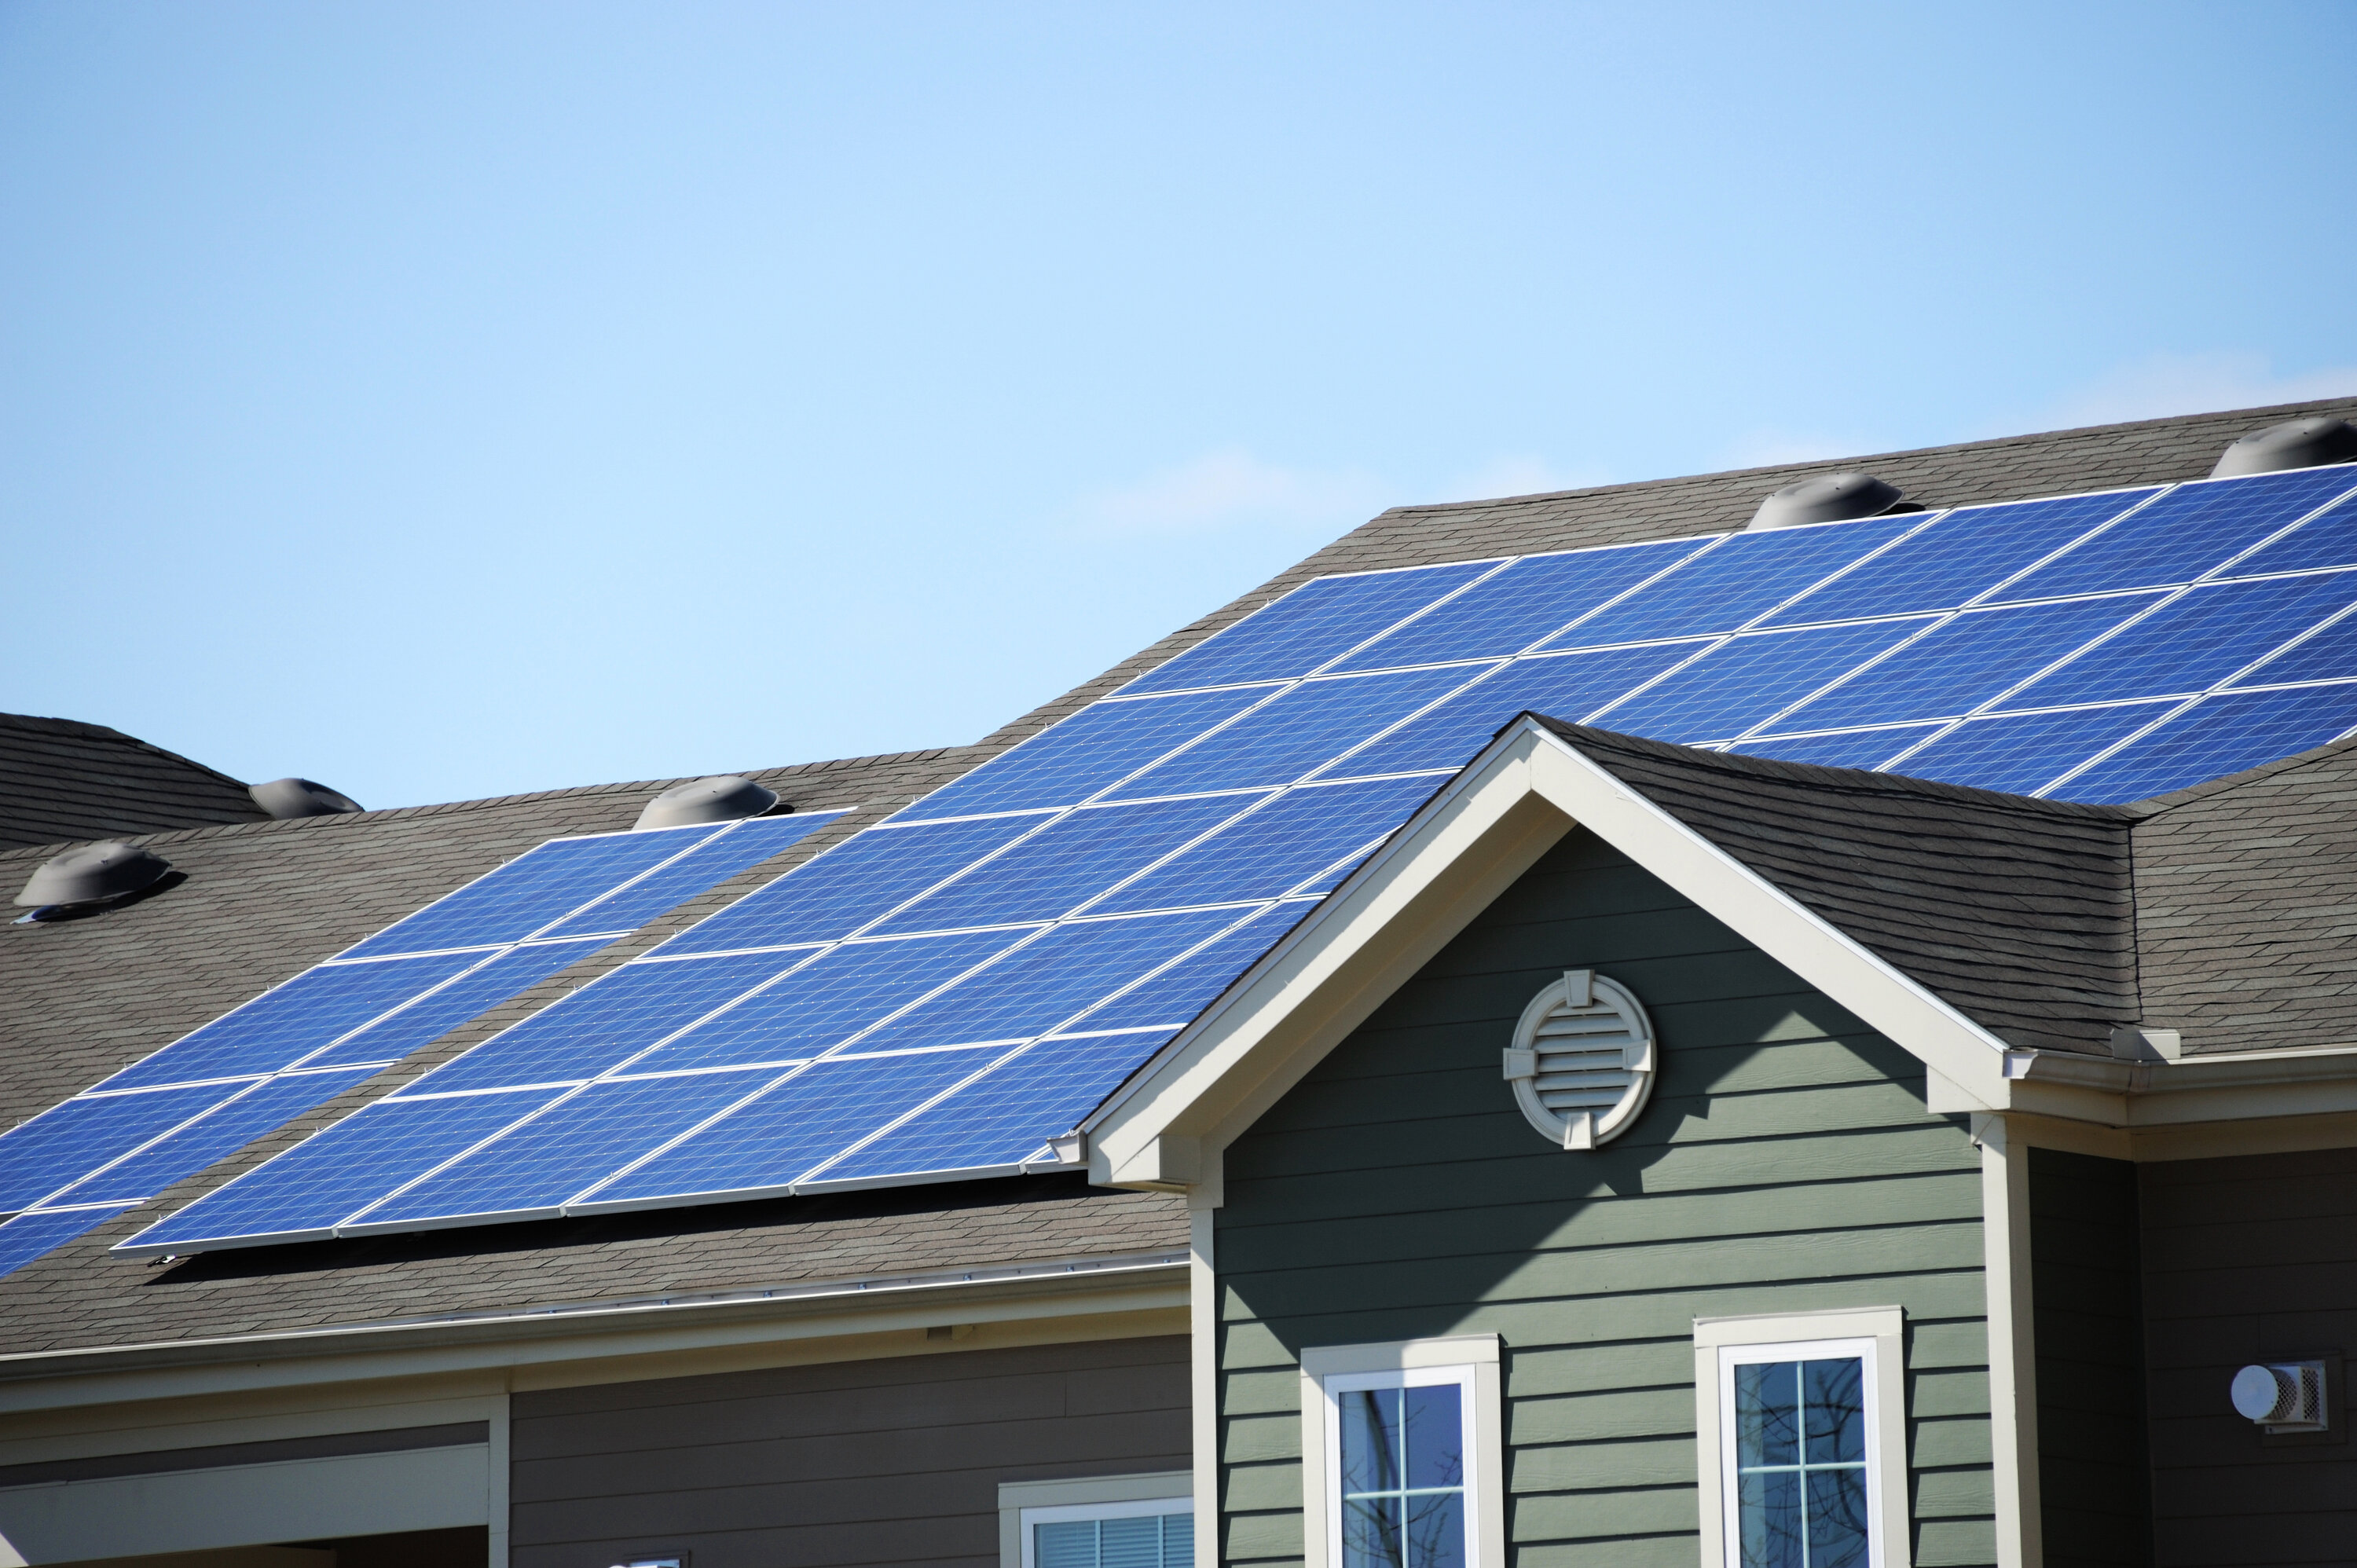 Sun panels on the roof of a green home.